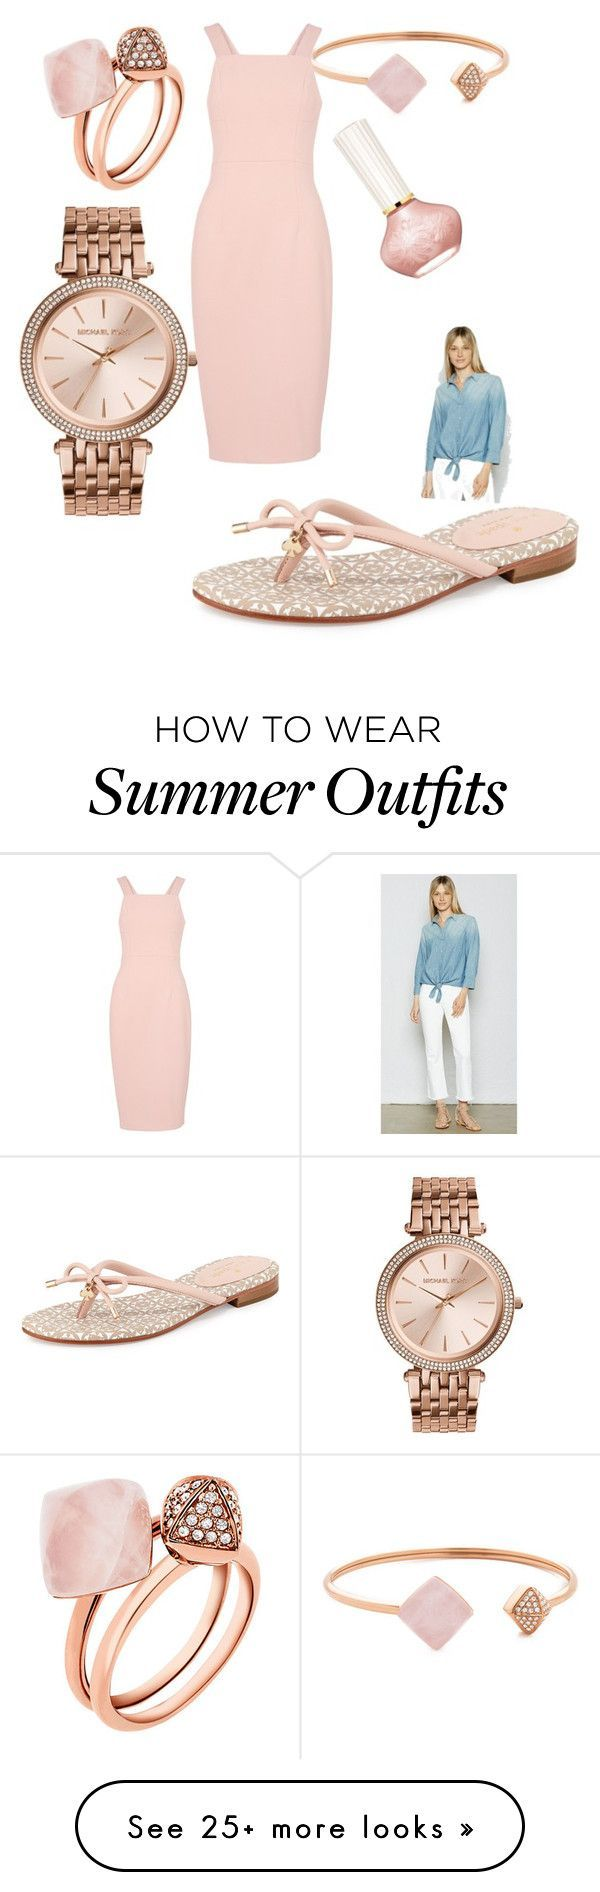 """Collection Of Summer Styles    """"Summer BBQ Outfit"""" by emily-louise-webberley on Polyvore featuring Current/Elliott, Michael Kors, MICHAEL Michael Kors, Paul & Joe Beaute, Kate Spade and Whistles    - #Outfits"""